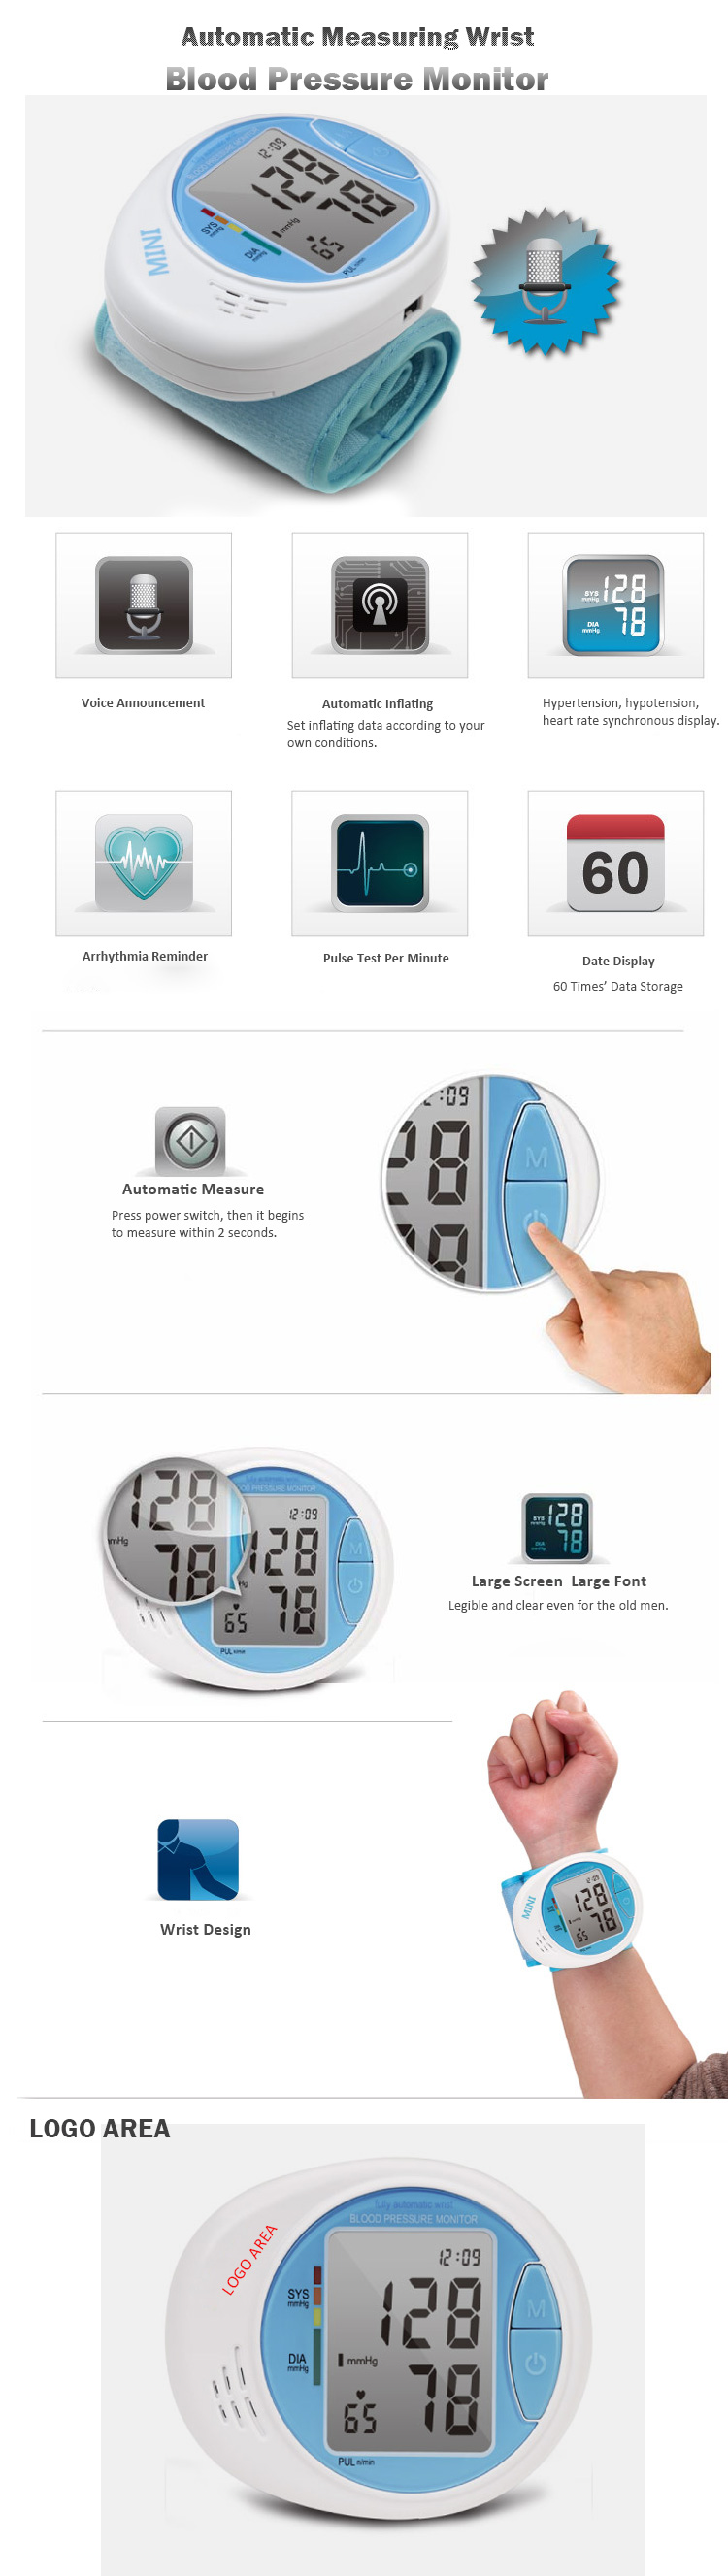 Automatic Measuring Wrist Blood Pressure Monitor